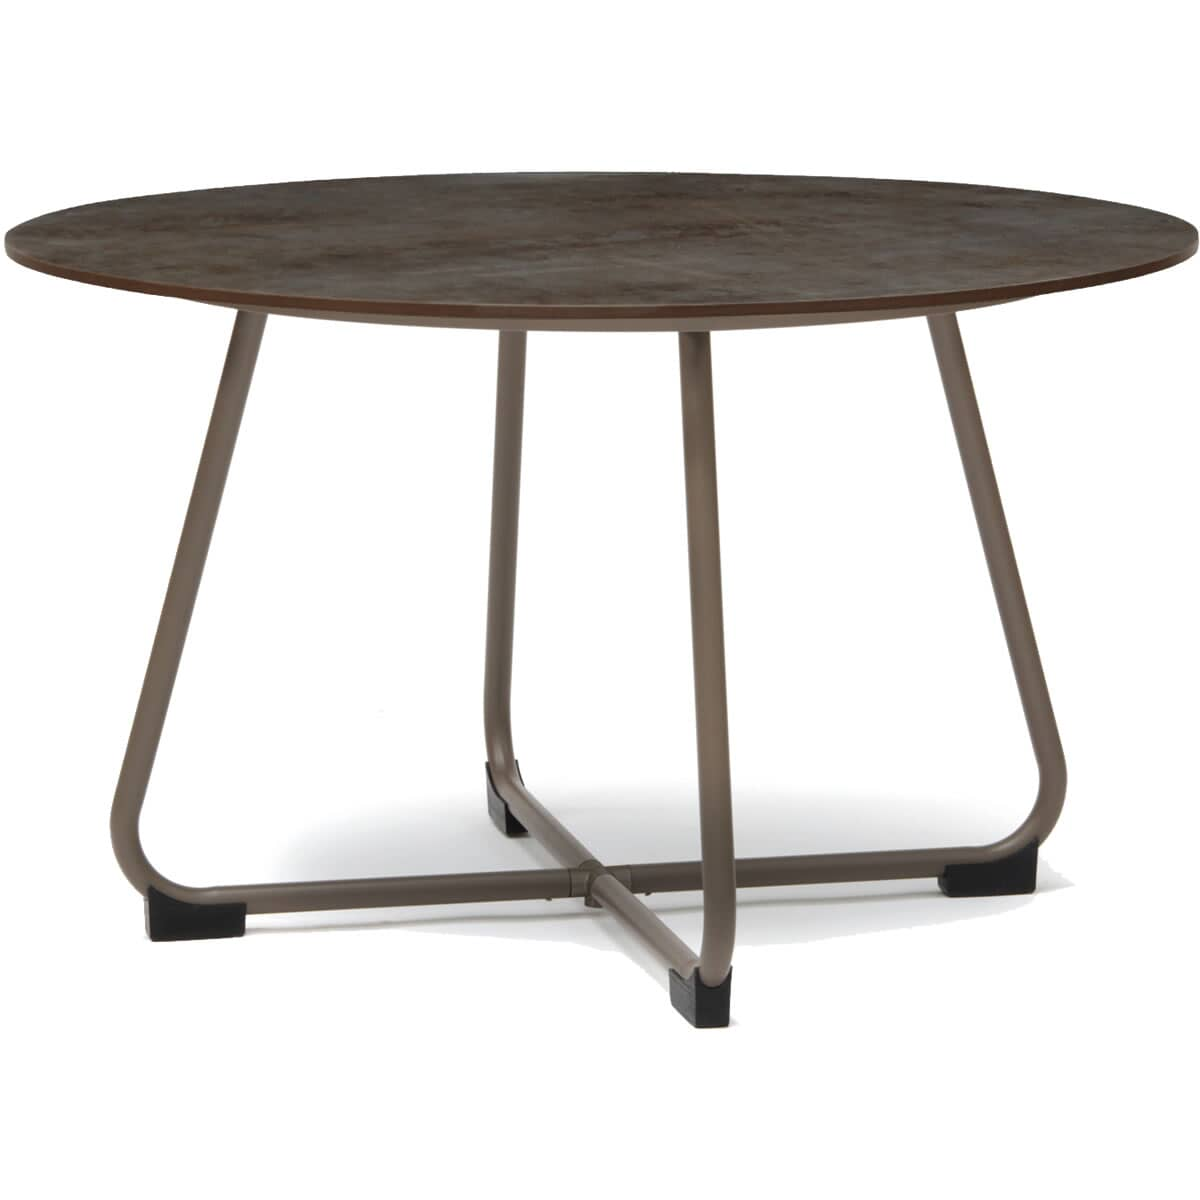 Kettler manhattan 110cm round hpl table patina taupe for Table kettler